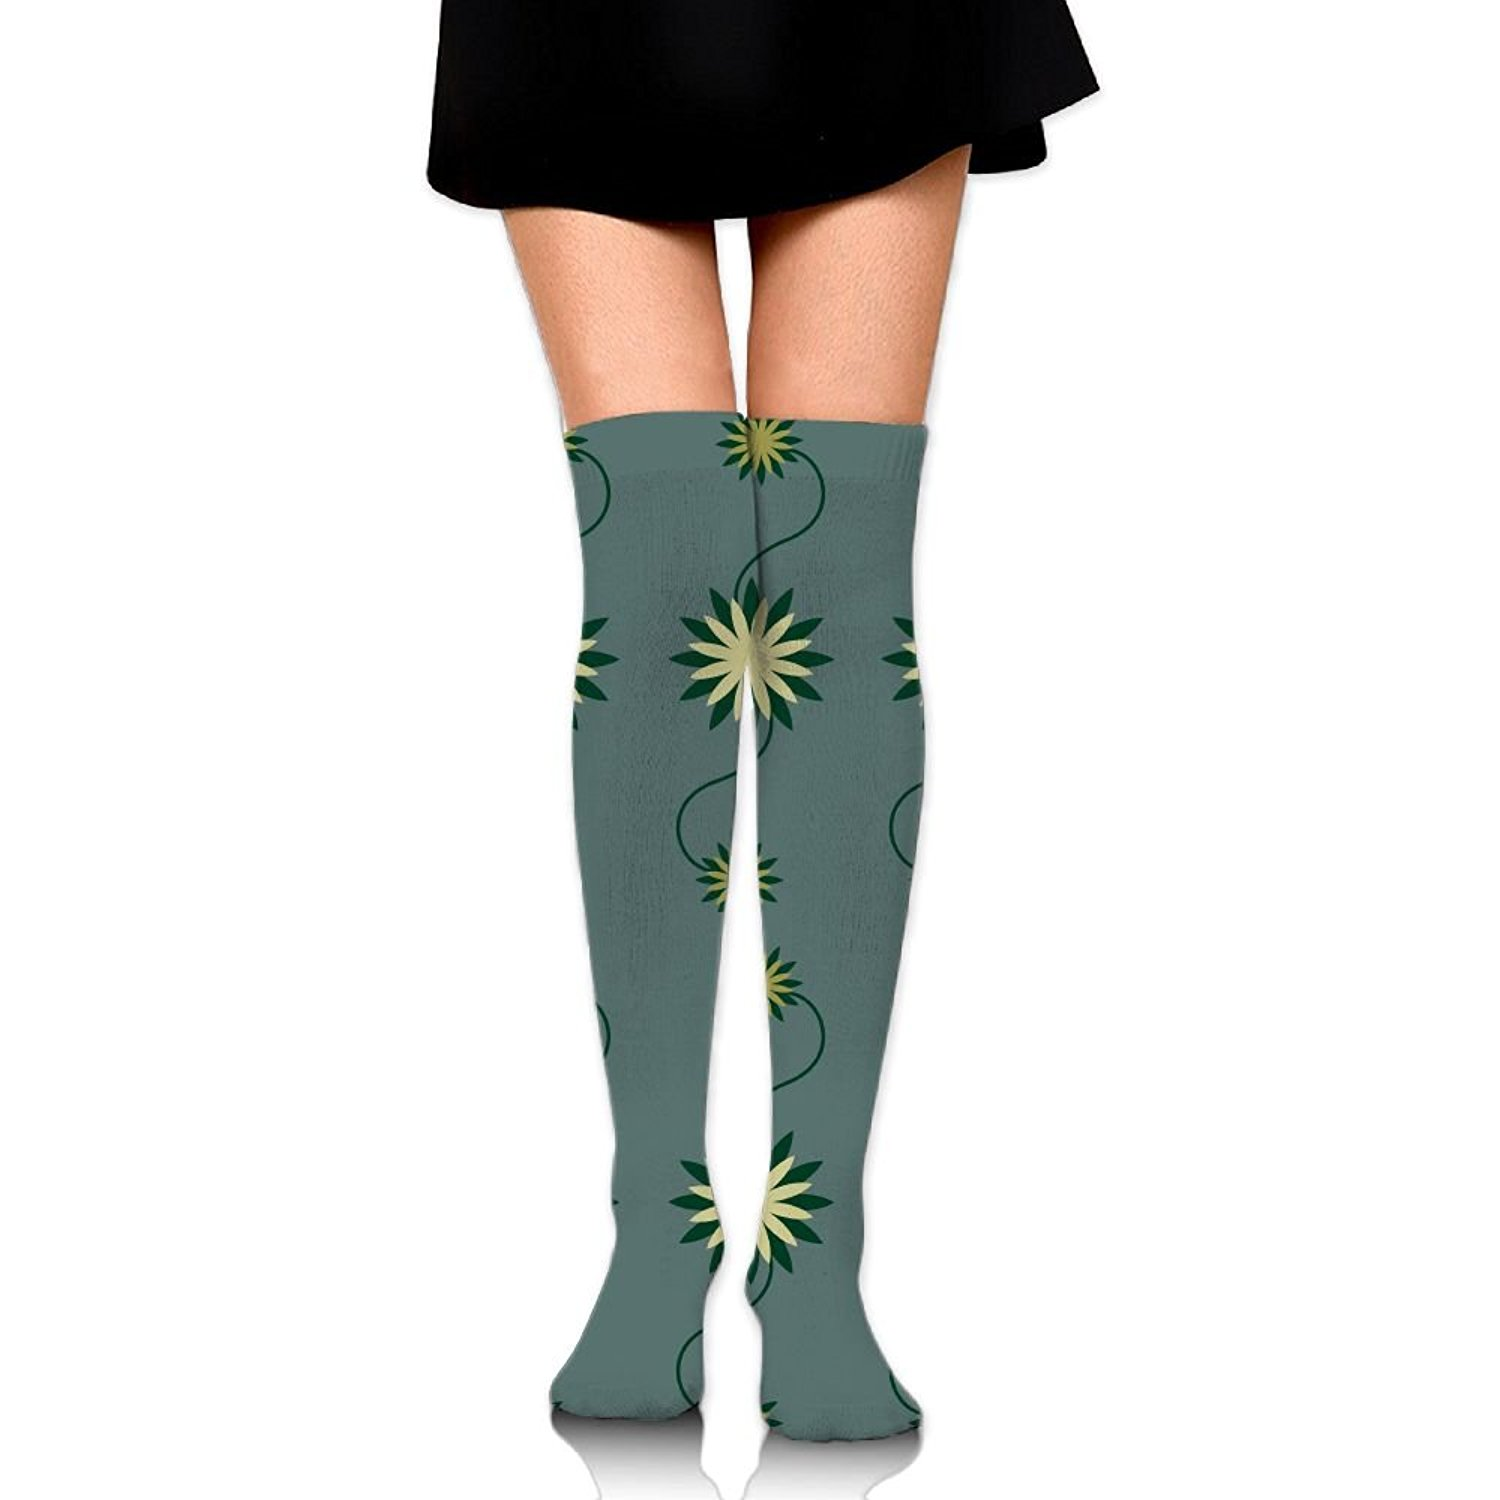 Zaqxsw Dandelion Women Graphic Thigh High Socks Cotton Socks For Womens